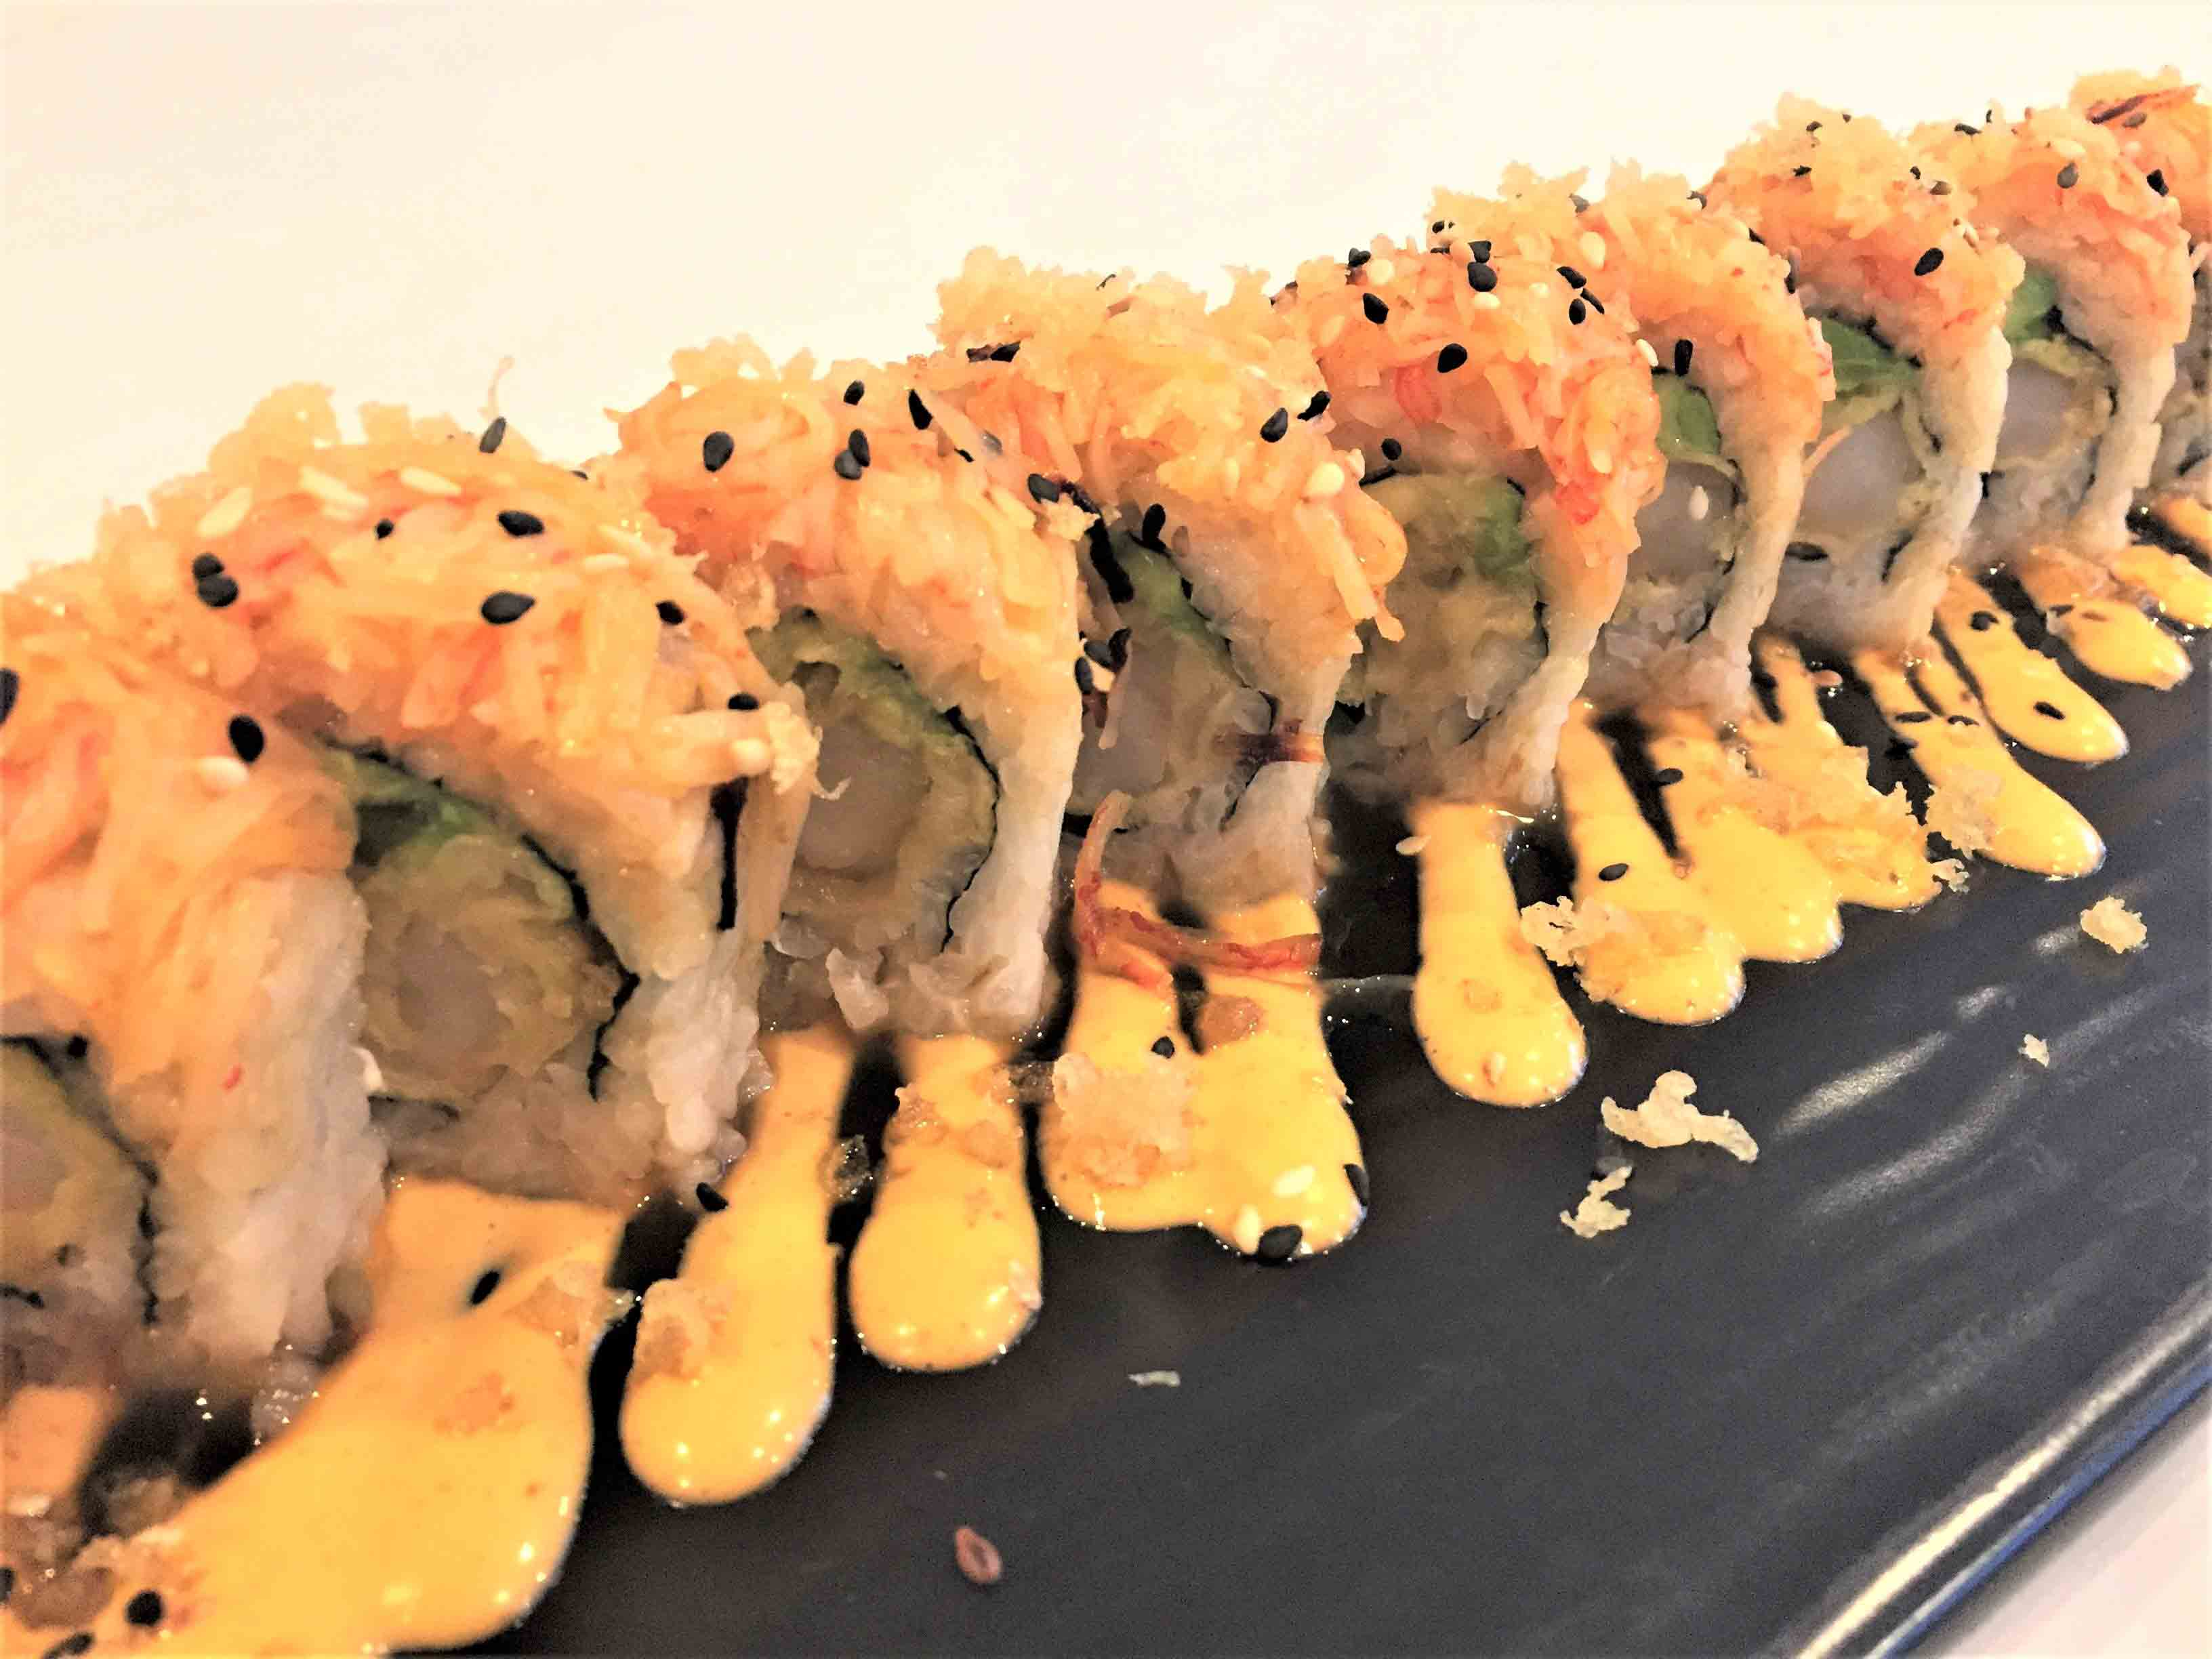 Spicy Mexican Roll sushi sanibel